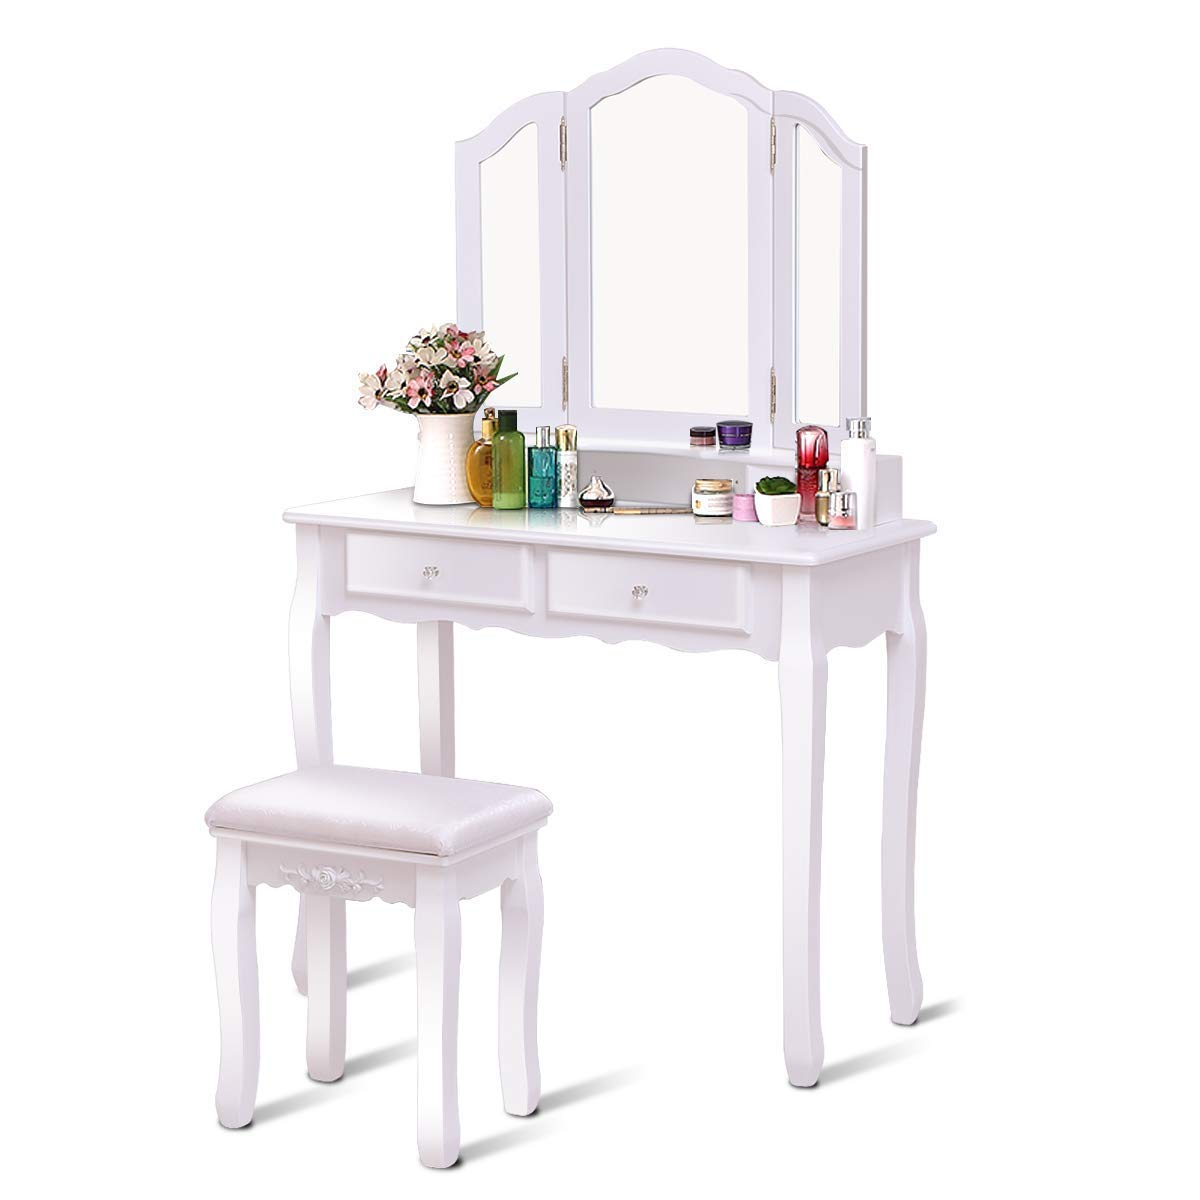 Amazon com casart tri folding mirror bathroom vanity makeup table stool set home furni with 4 drawers white kitchen dining